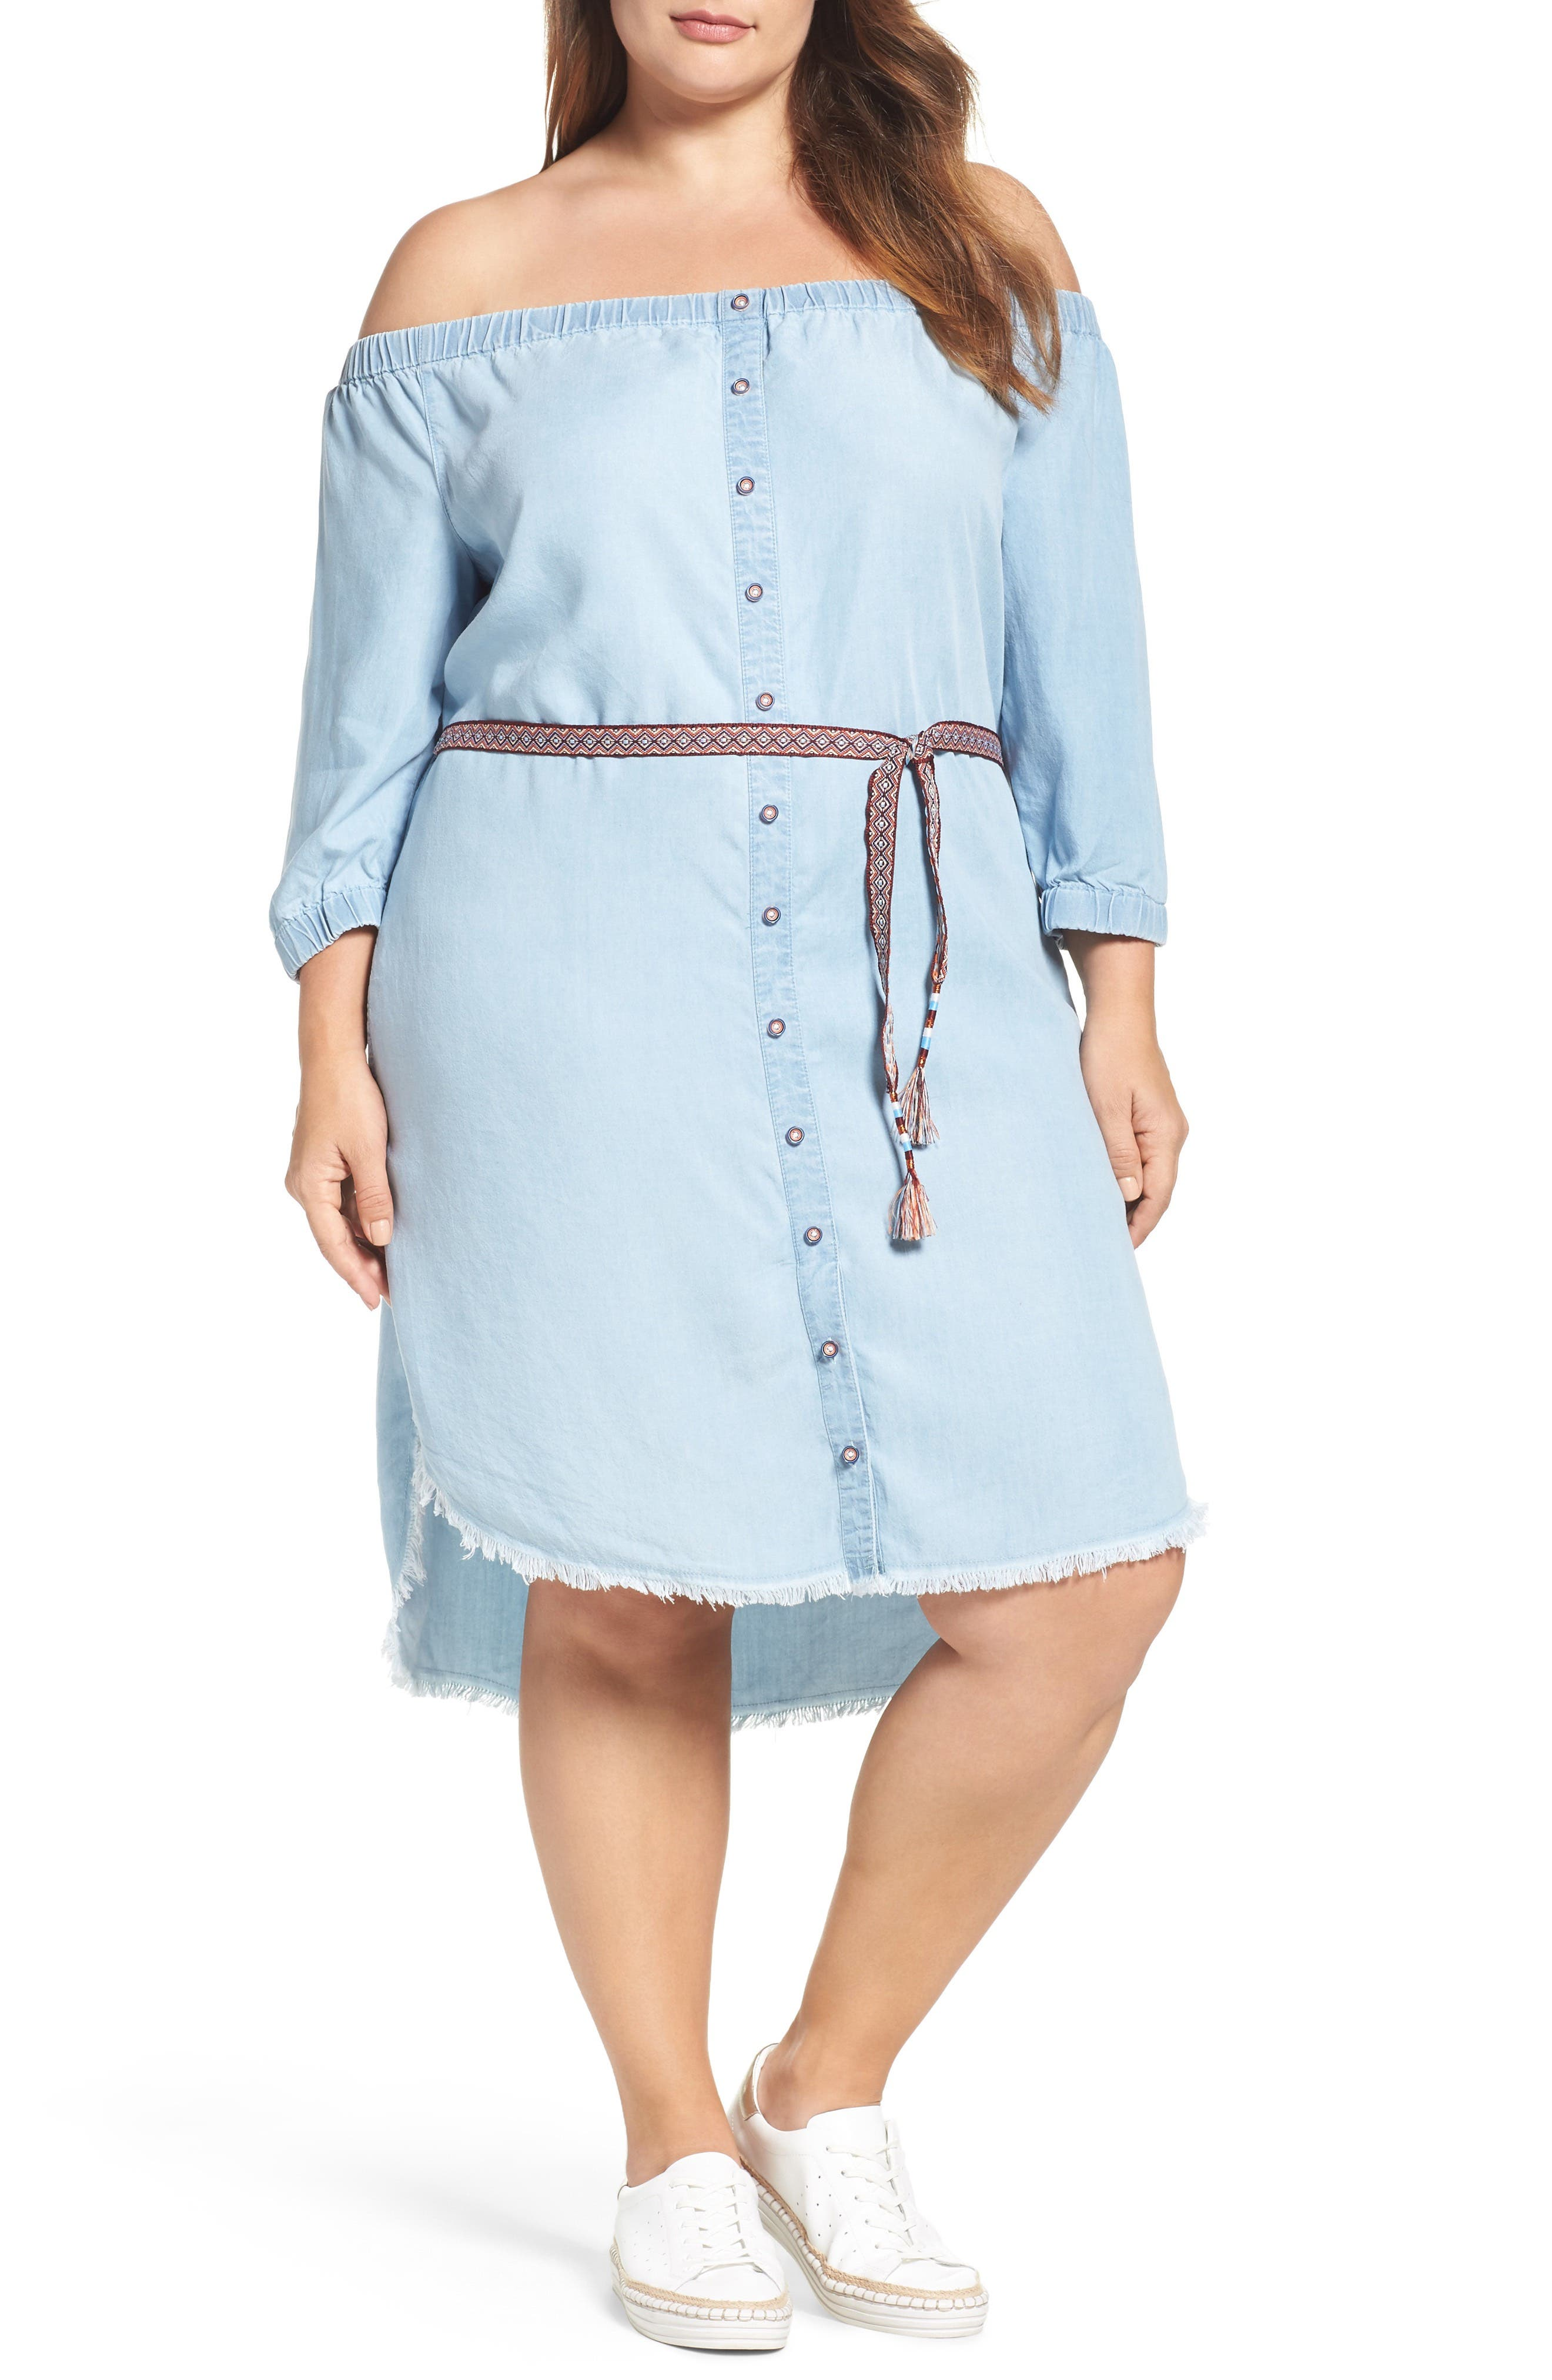 Alternate Image 1 Selected - Democracy Chambray Off the Shoulder Shirtdress (Plus Size)